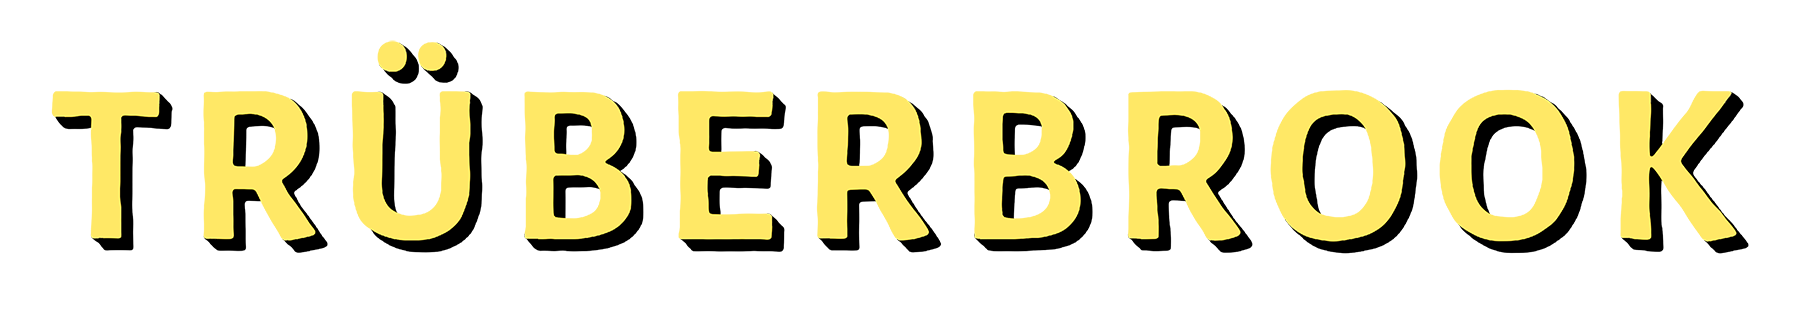 truberbrook_logo_medium